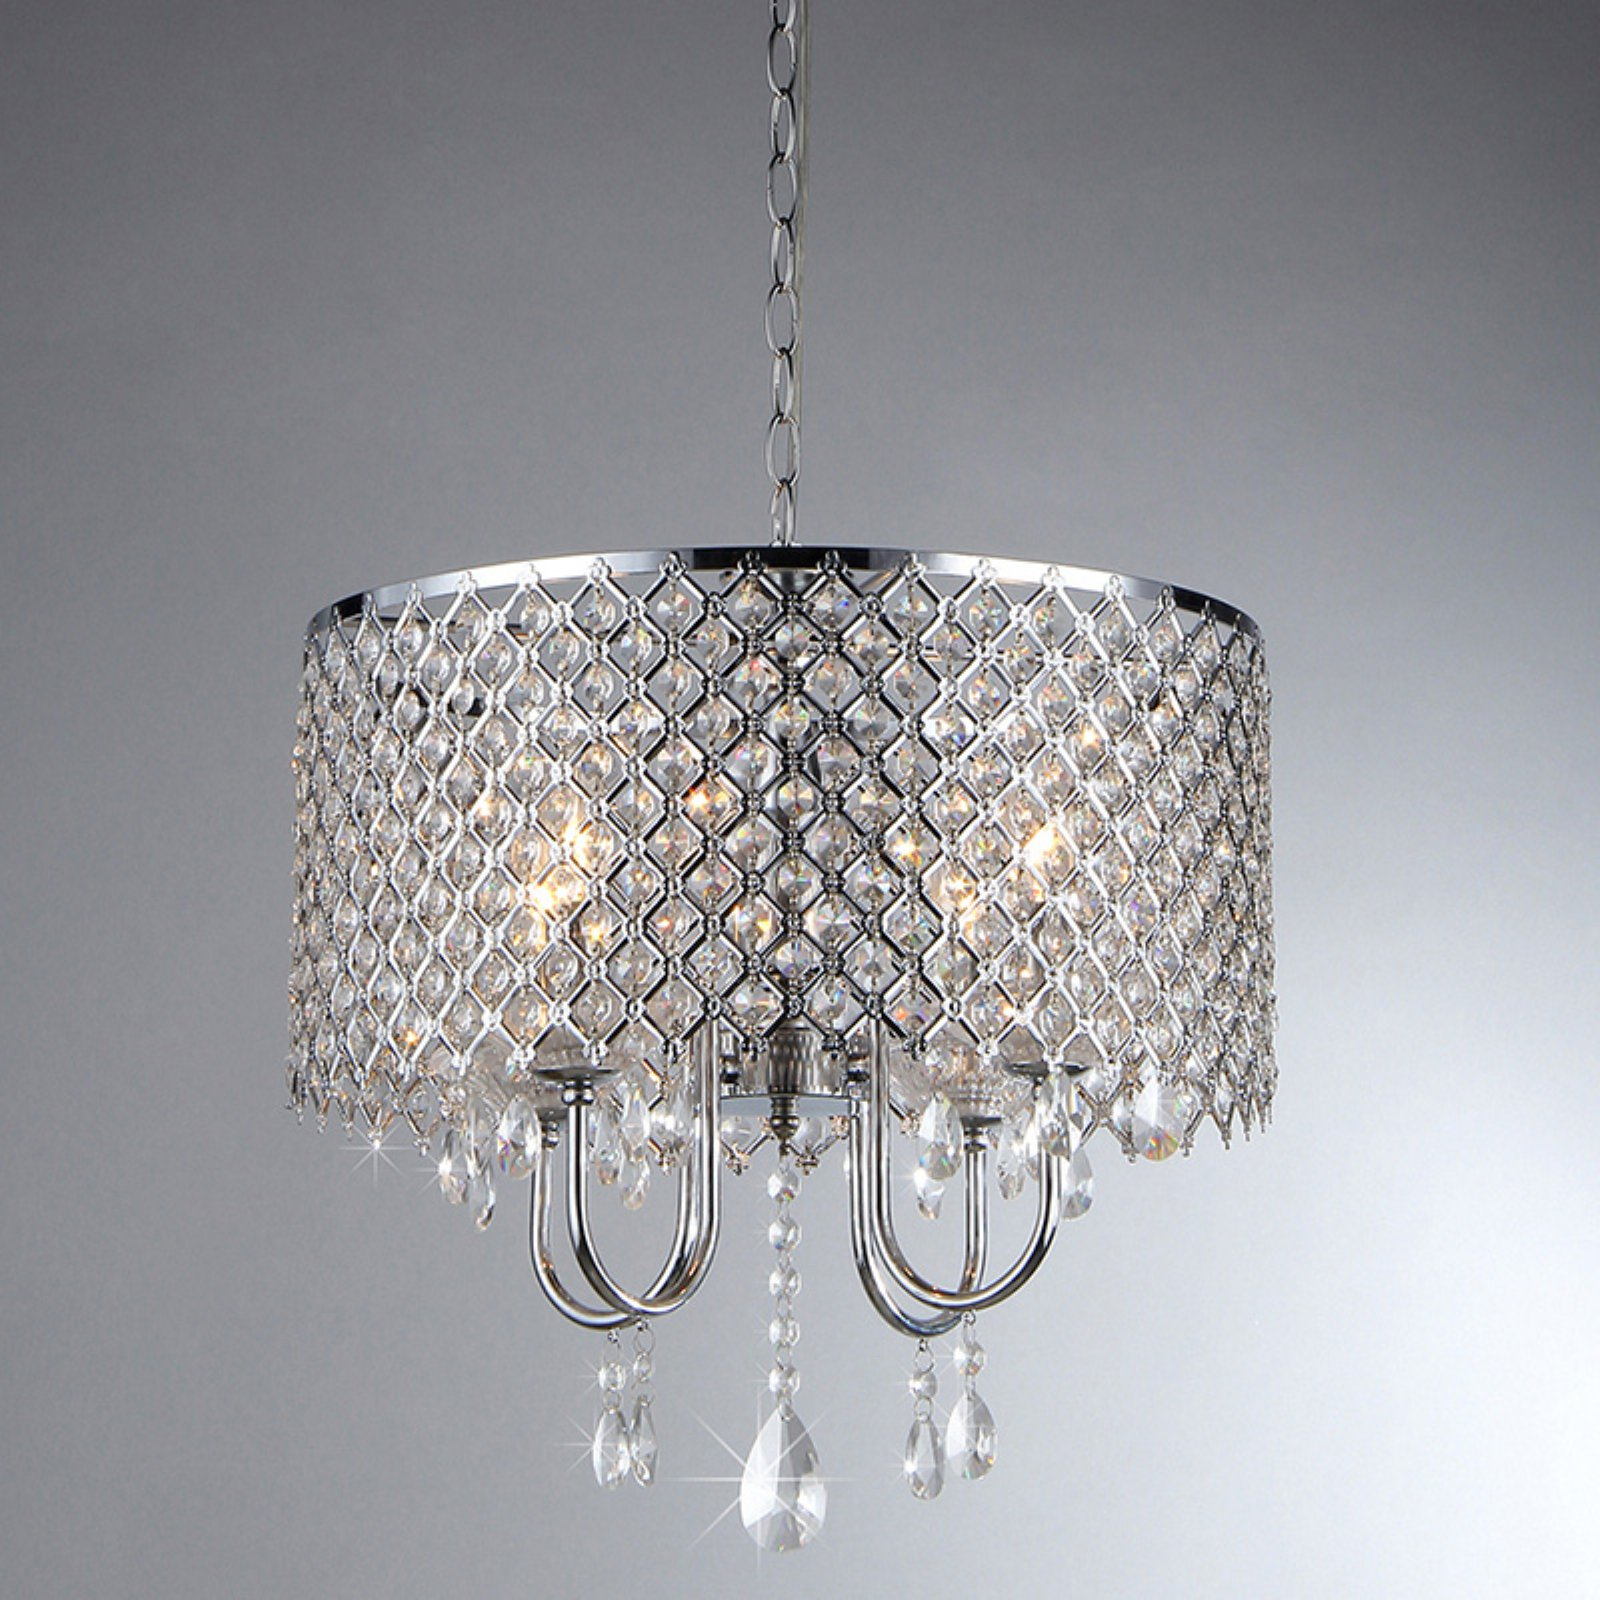 Warehouse of Tiffany Deluxe Crystal RL5633 Chandelier